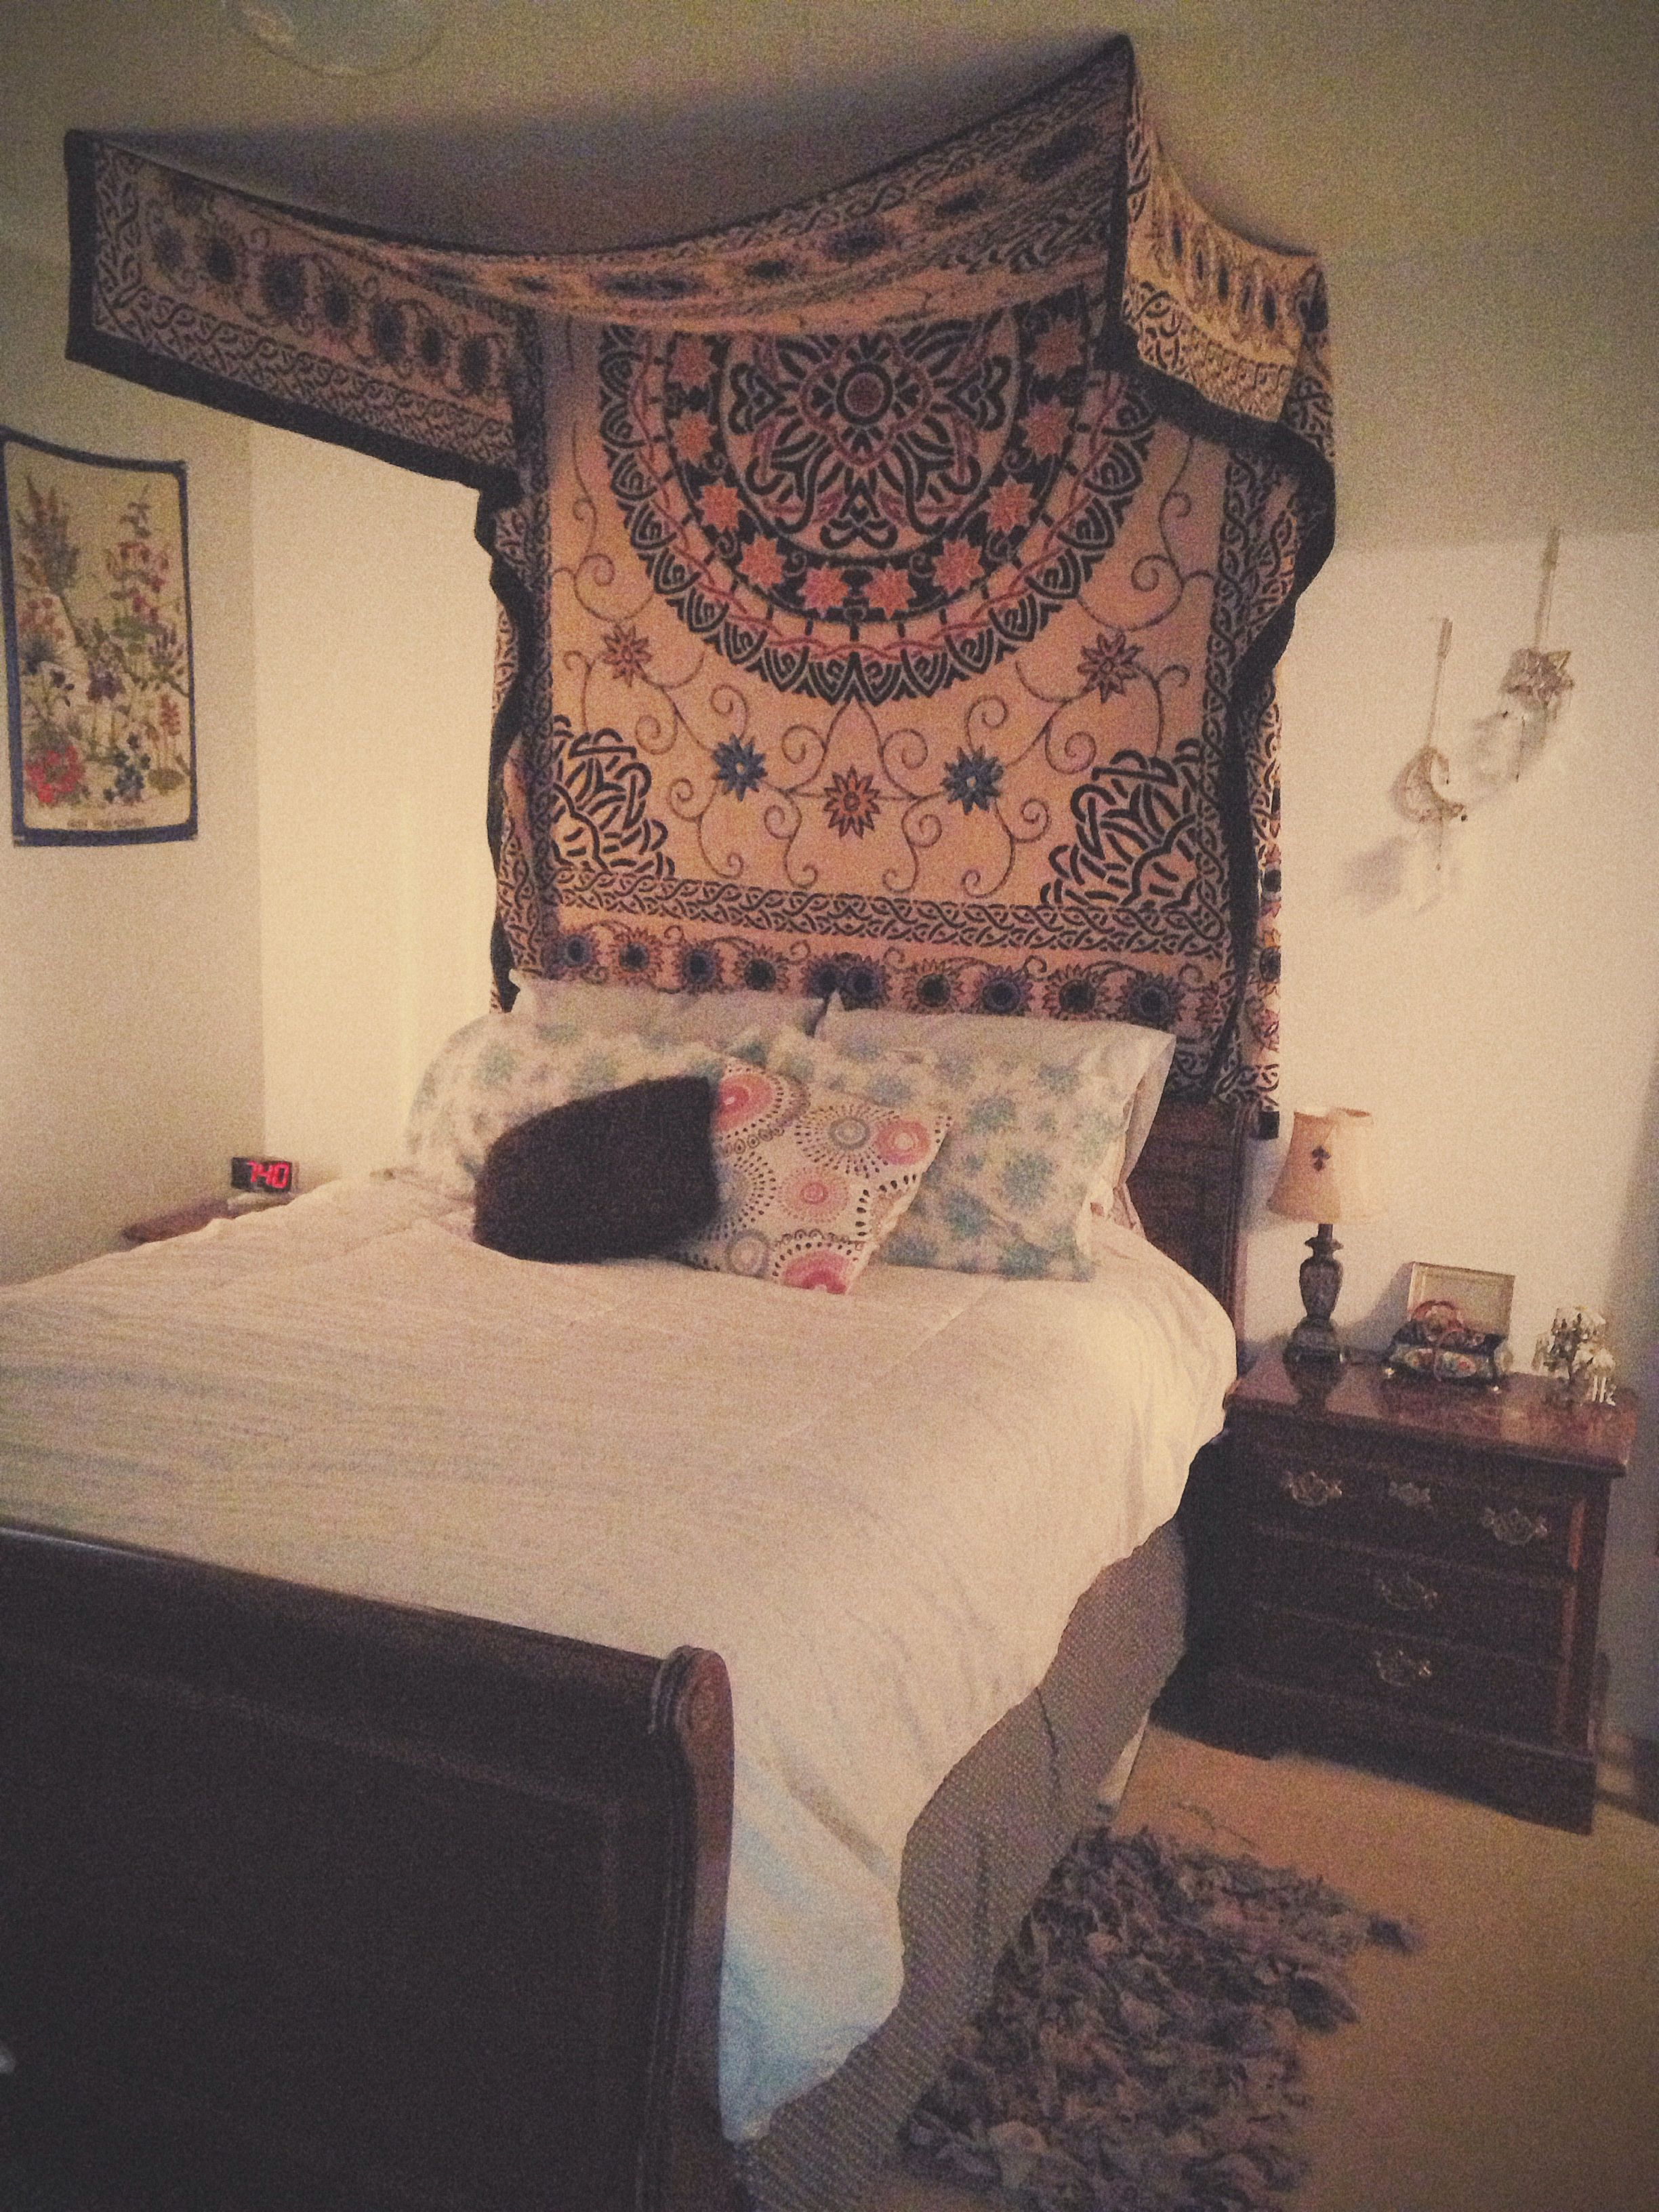 Decided To Hang Up My Favorite Tapestry And It Turned Out Super Cool We Love Over Bed